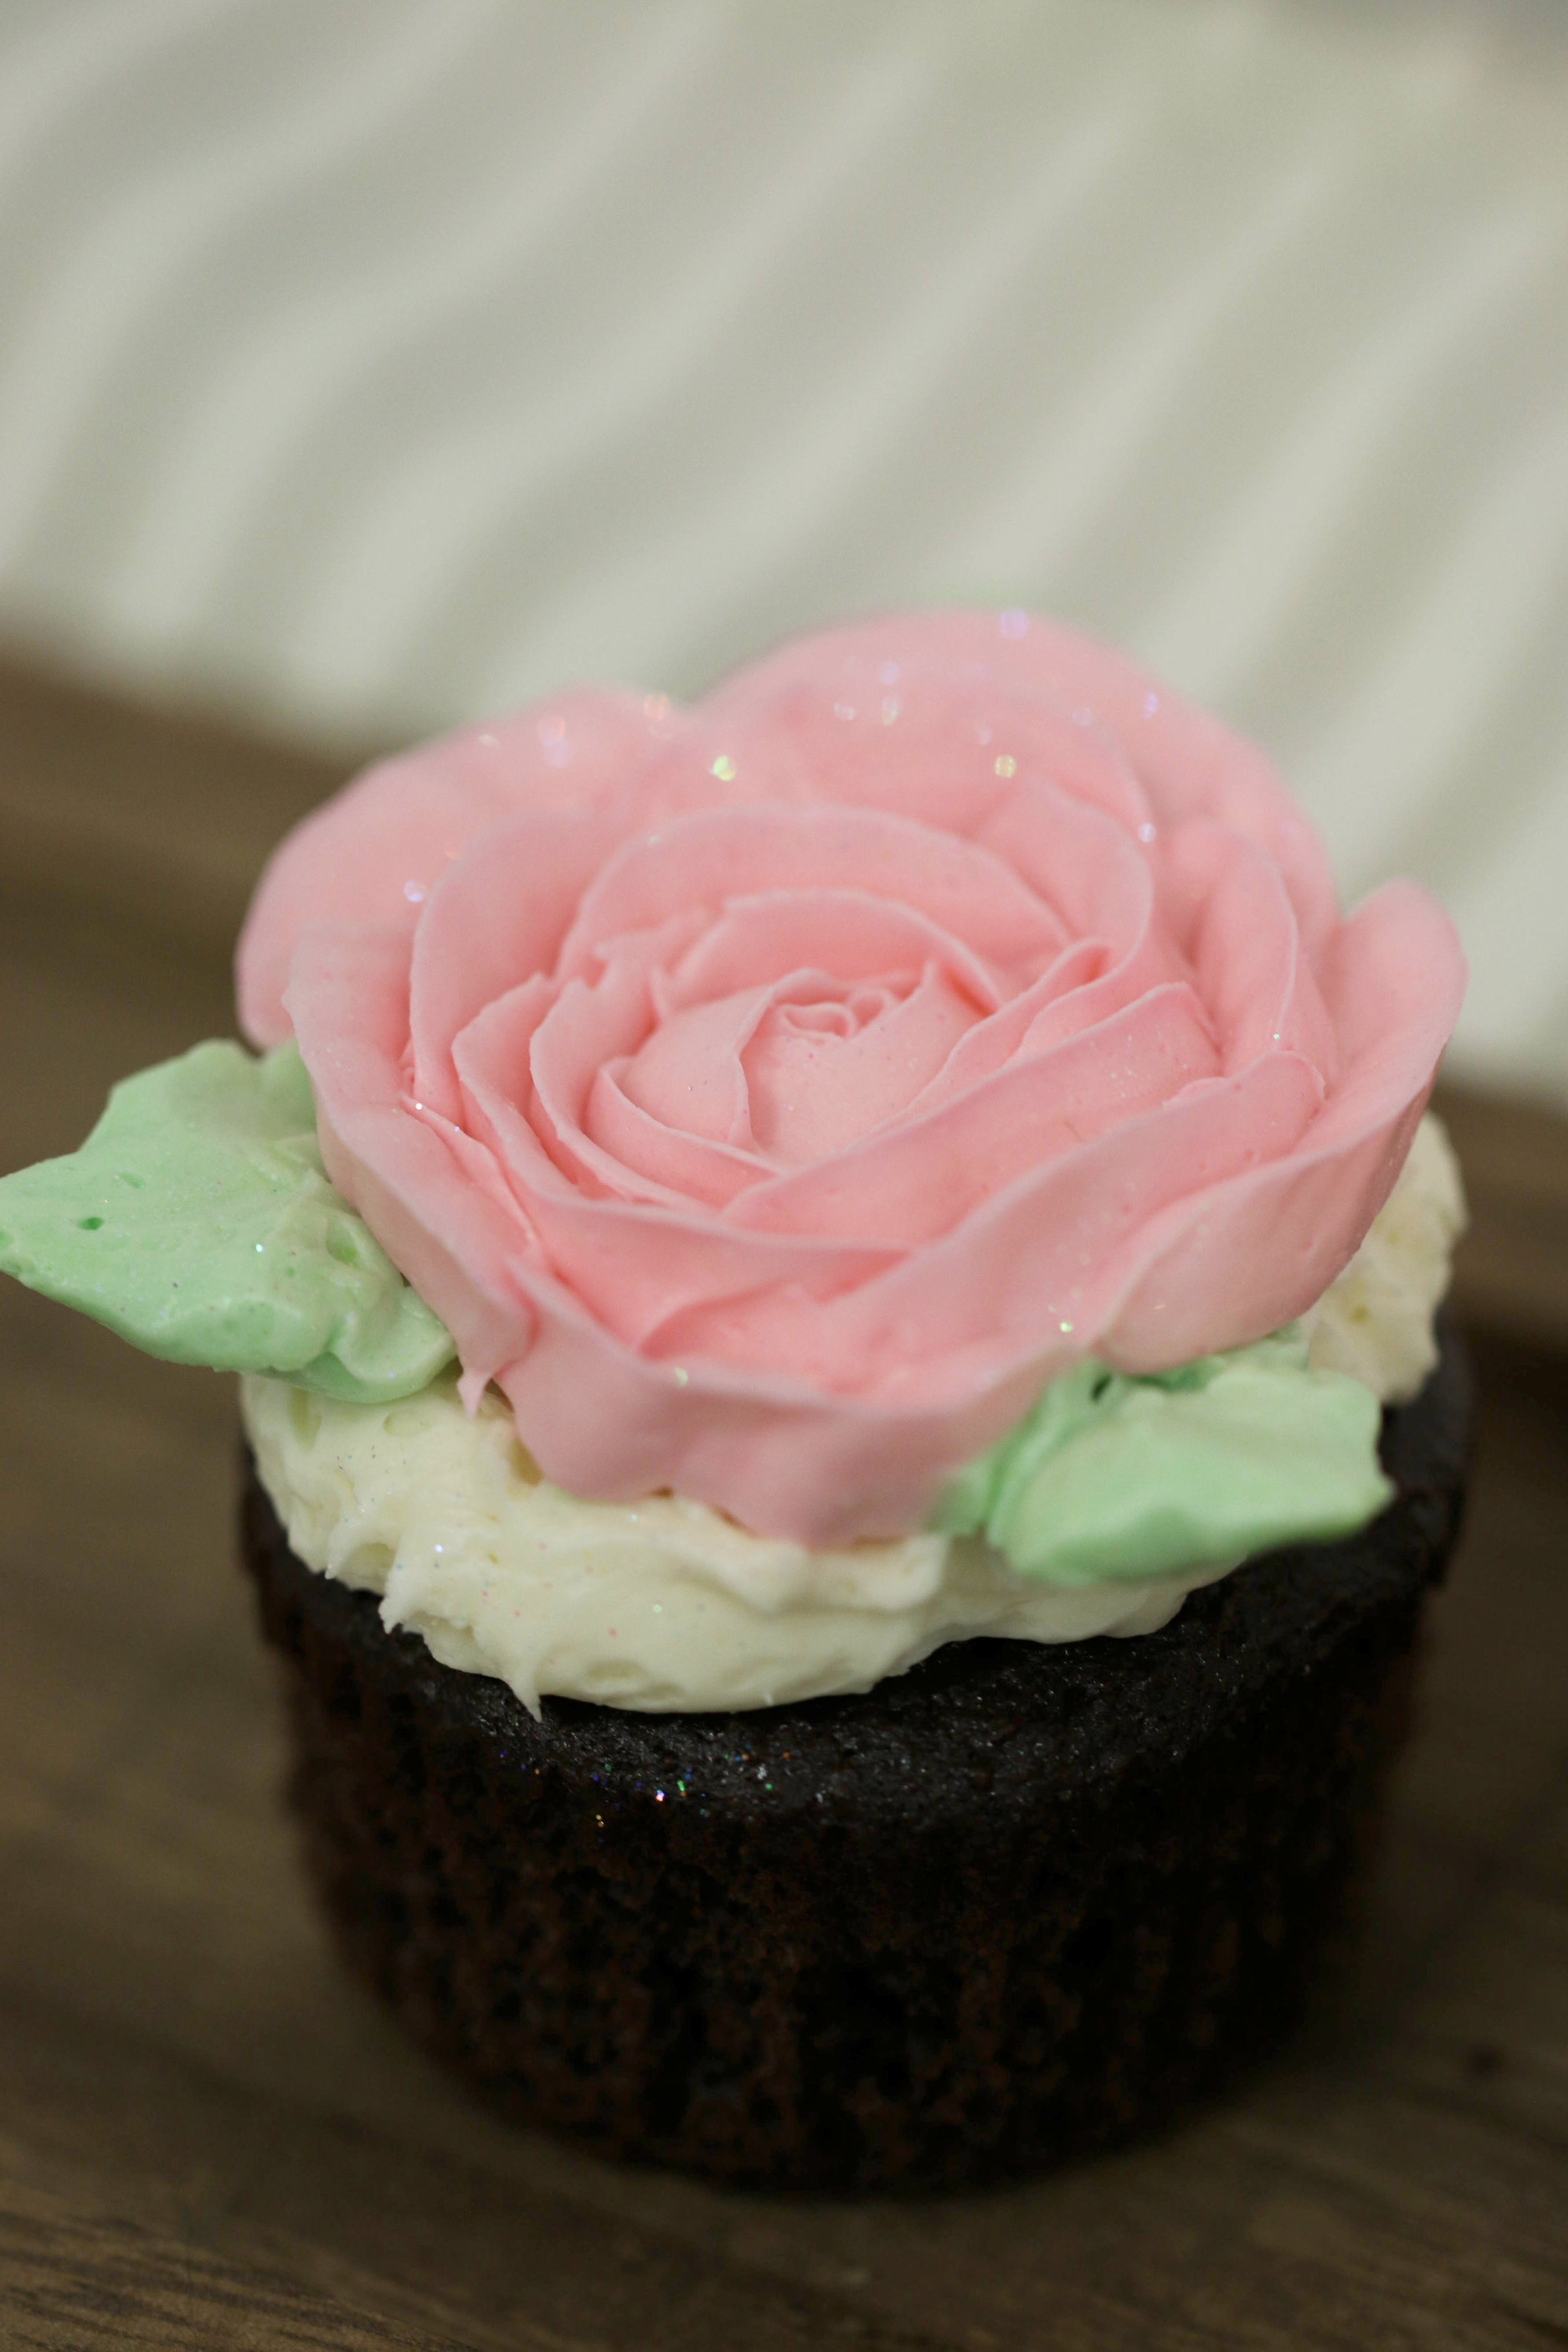 White cupcake with buttercream frosting